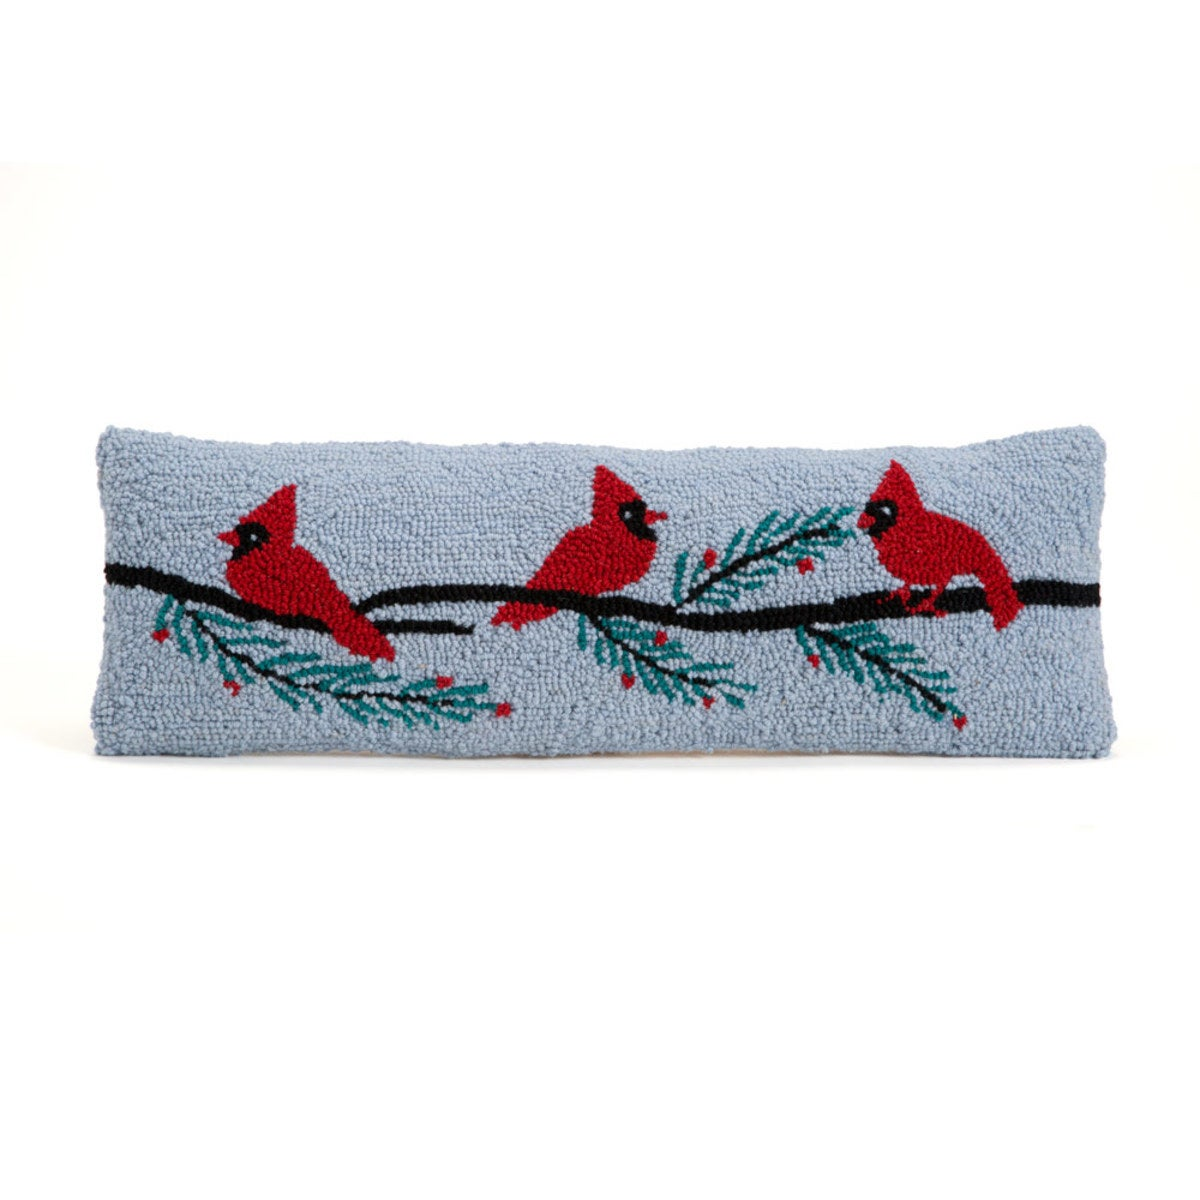 Hand-Hooked Wool Lumbar Pillow - Cardinal Perch